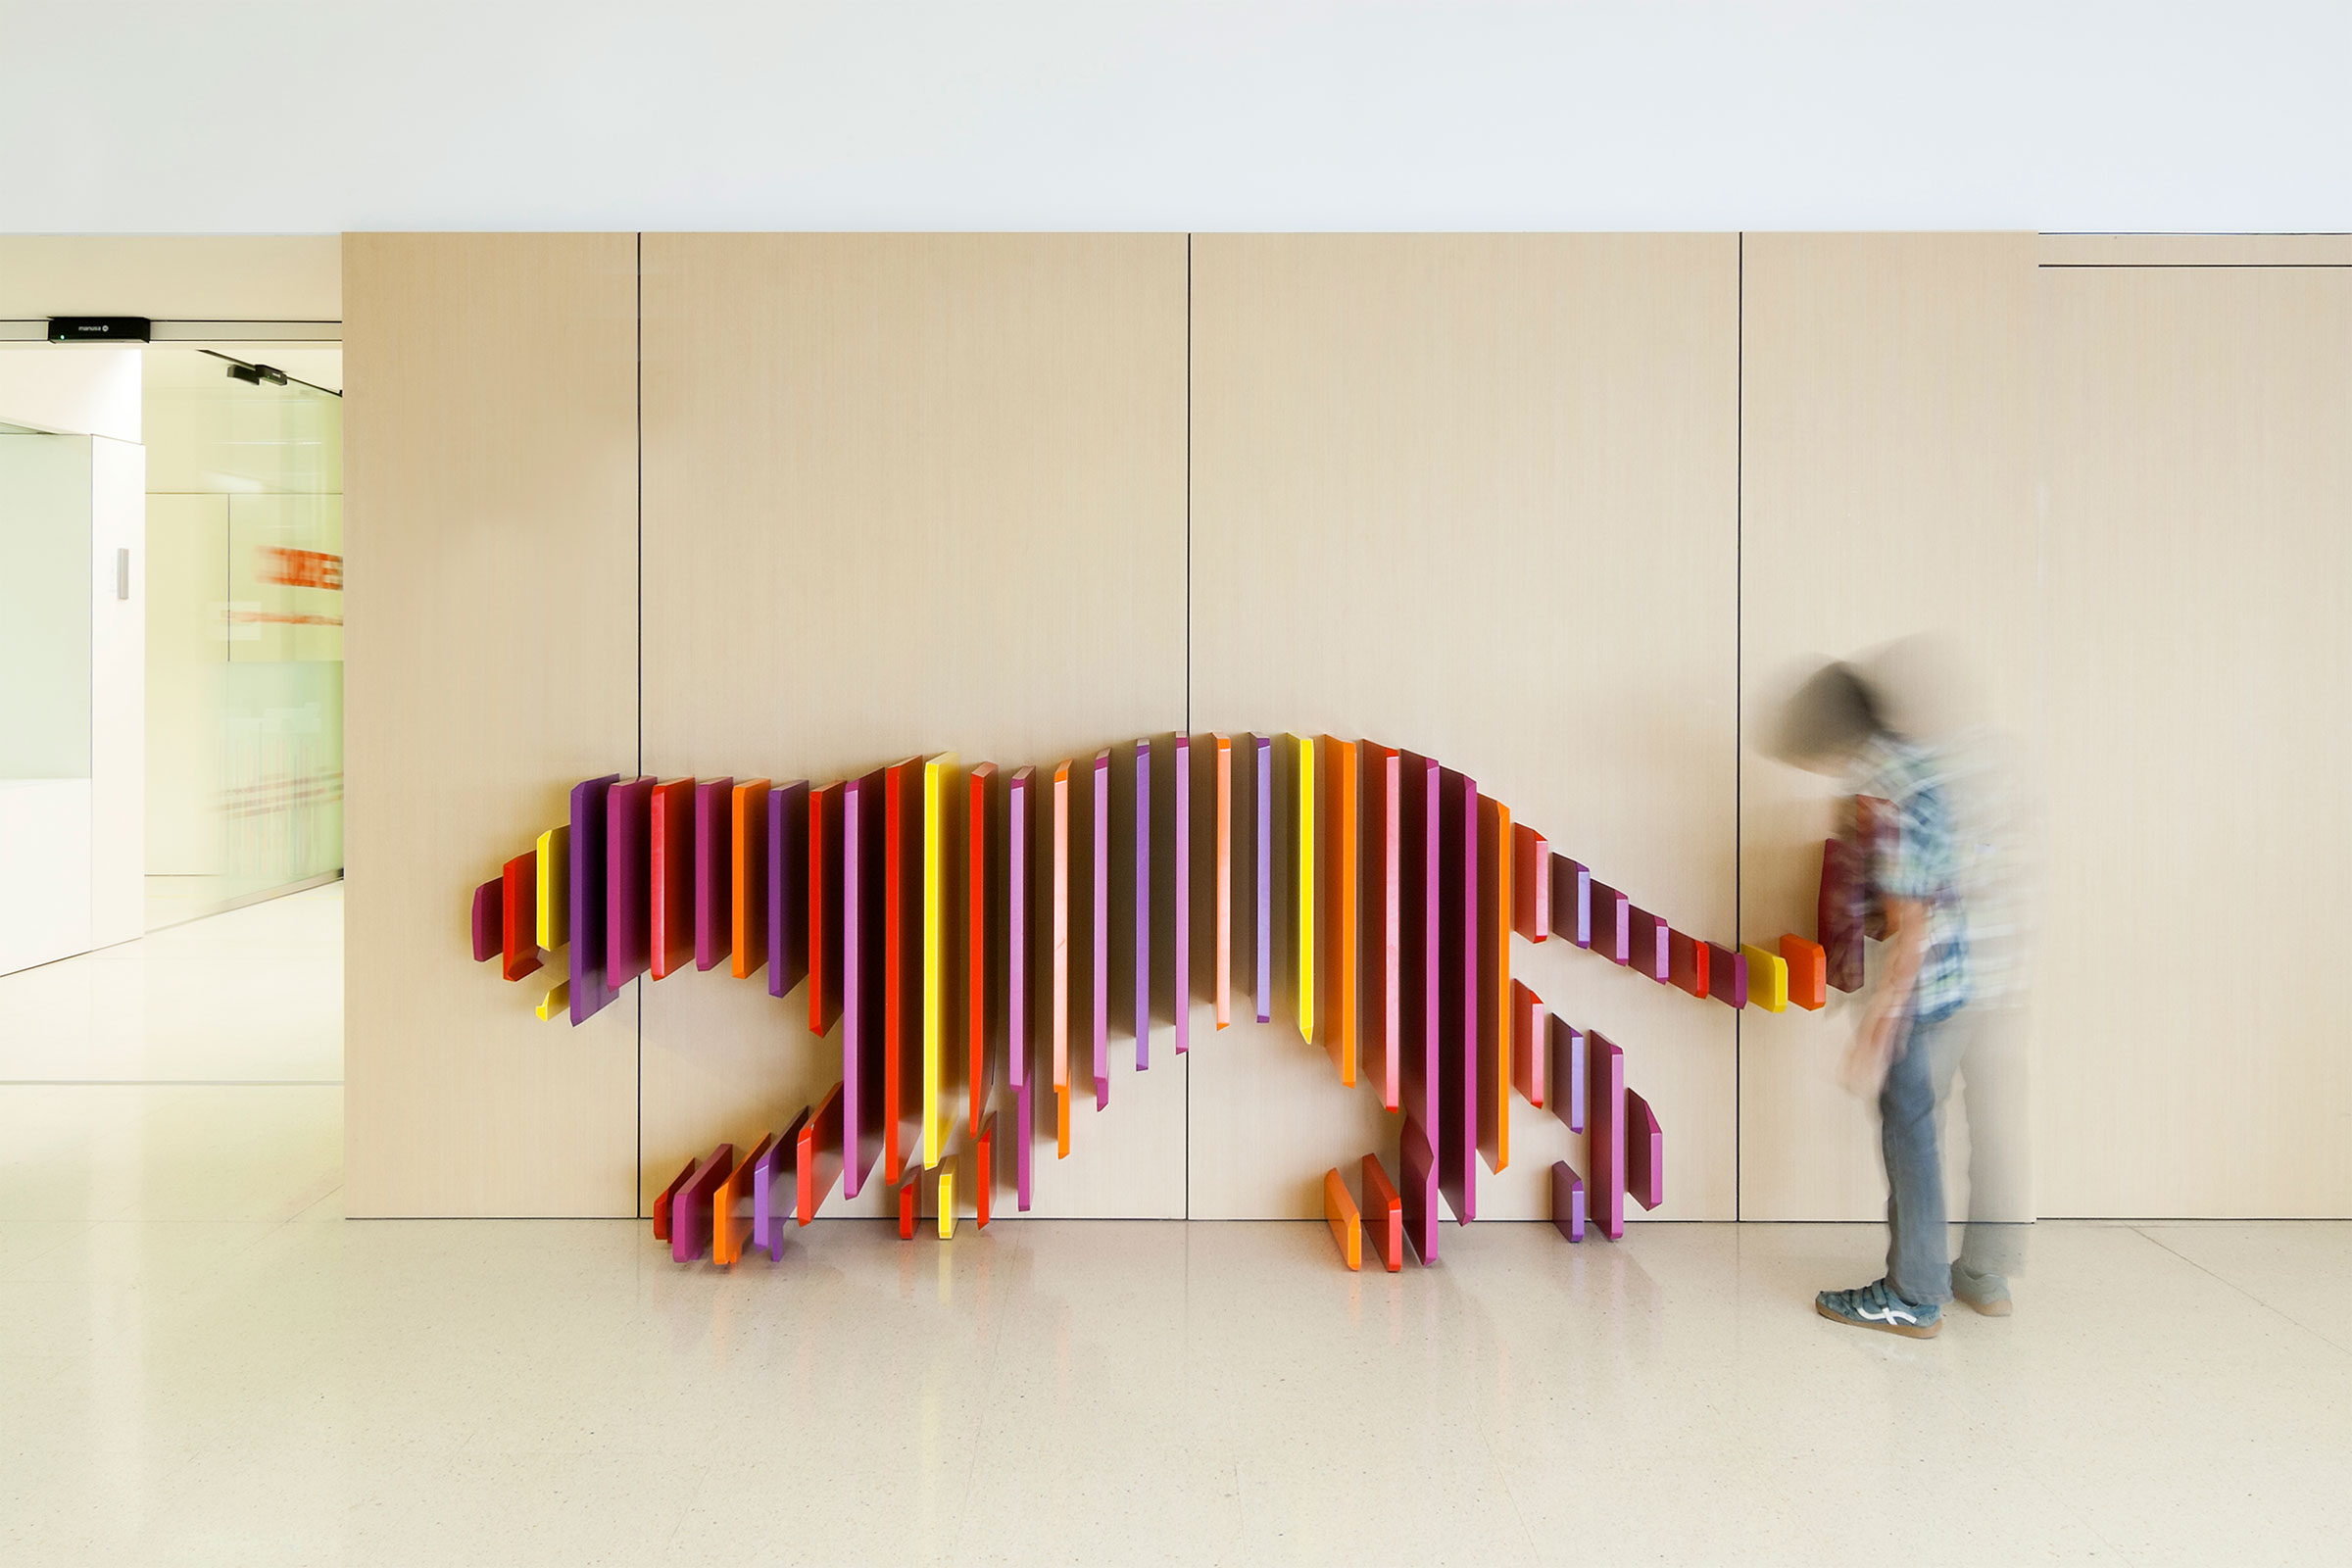 Tiger, Hospital Sant Joan de Déu, Barcelona. From Can Graphic Design Save Your Life  at the Wellcome Collection. © Rubio Arauna Studio, Rai Pinto Studio. Picture by Victòria Gil